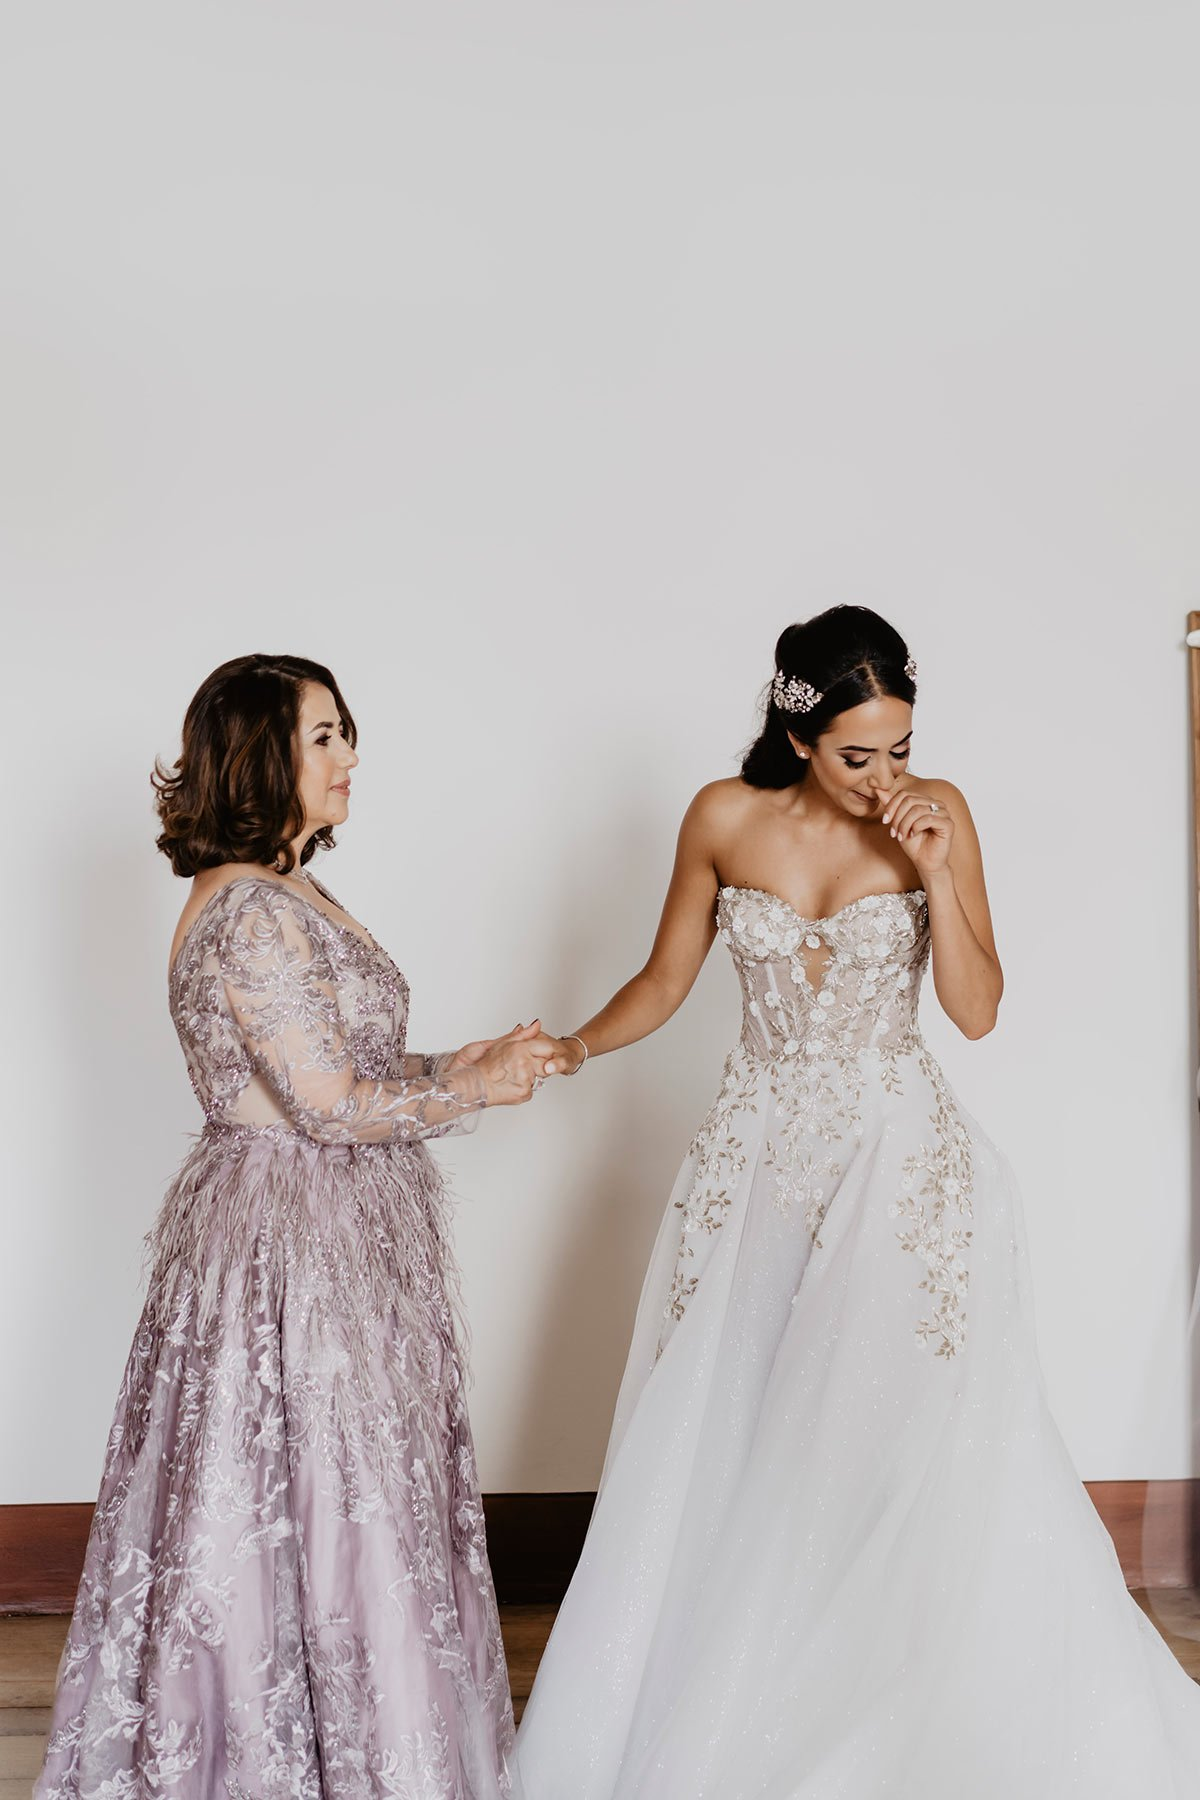 Ranya and Tarek, emotional moment, the bride and her mother